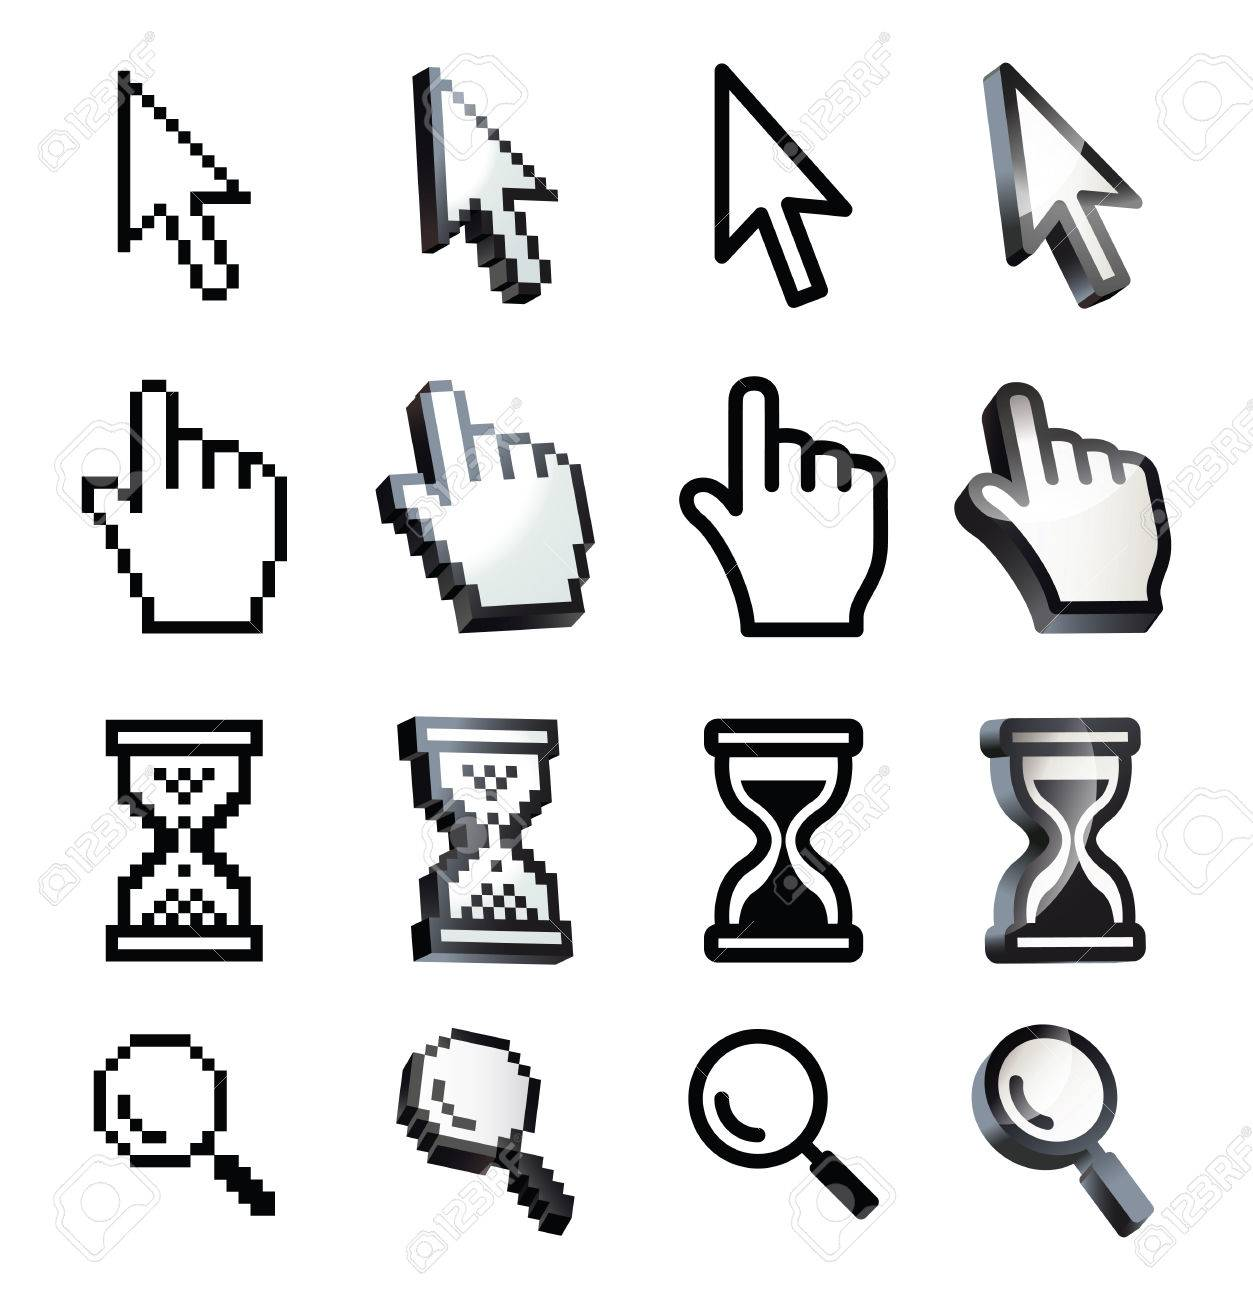 Cursor. Hand, arrow, hourglass, magnifying. Black and white vector illustration. Conceptual illustration. Isolated on white background - 50124886